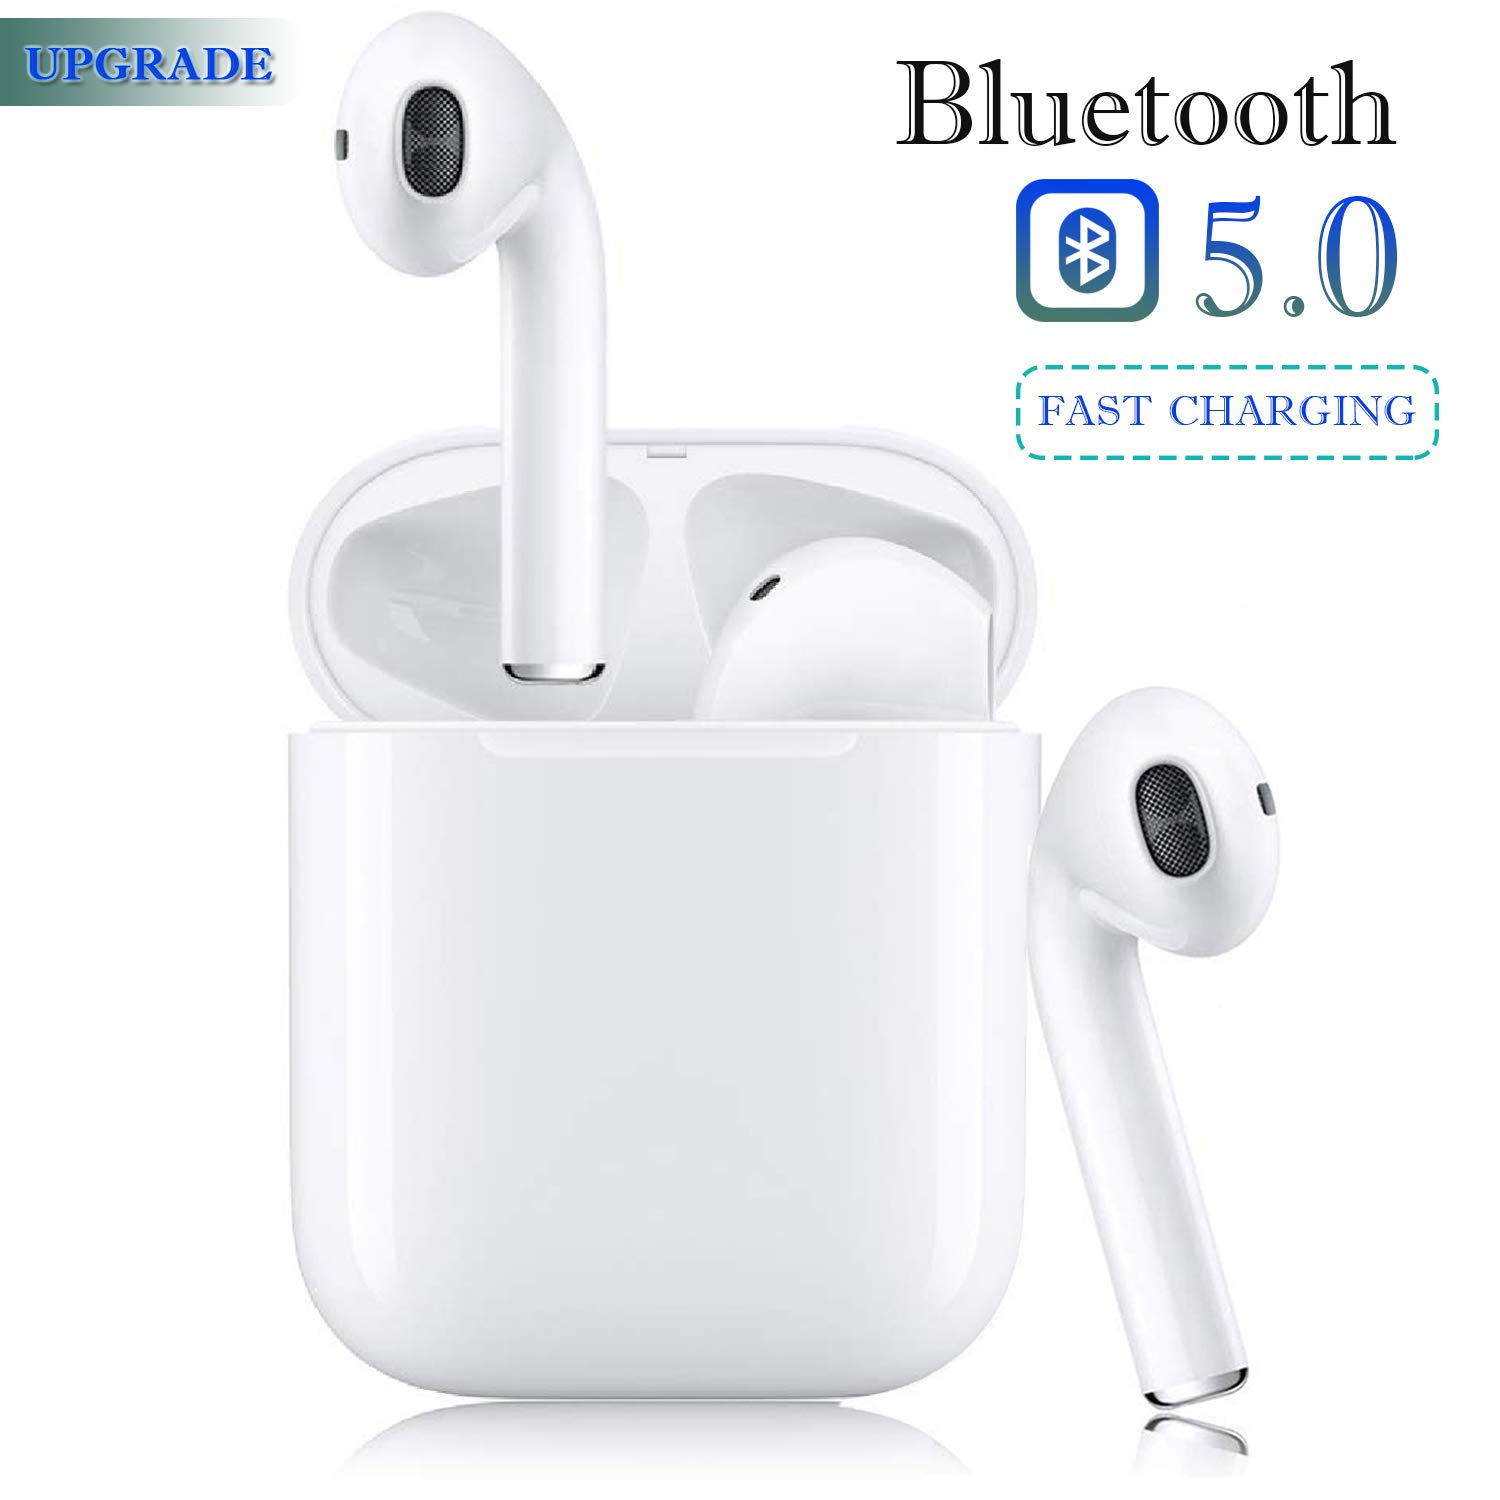 Bluetooth 5.0 Wireless Earbuds Headsets Bluetooth Headphones 24Hrs Charging Case 3D Stereo IPX5 Waterproof Pop-ups Auto Pairing Fast Charging for Earphone Samsung Apple Airpods Sport Earbuds